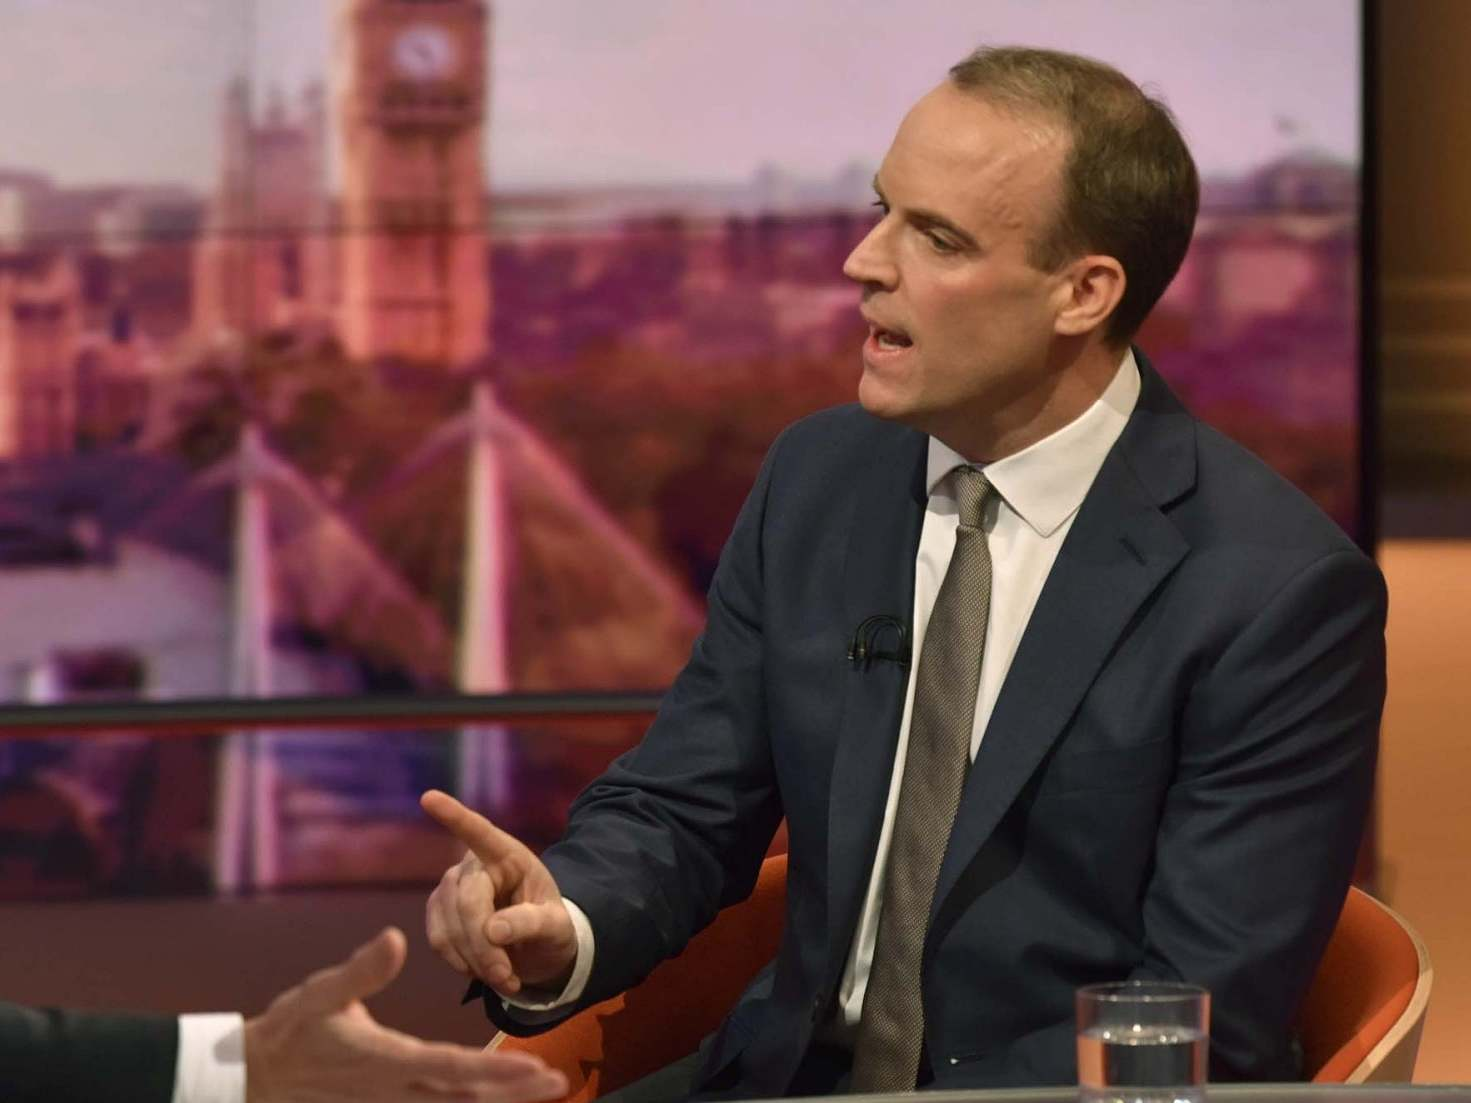 Brexit Dominic Raab Tells Businesses To Innovate To Plug